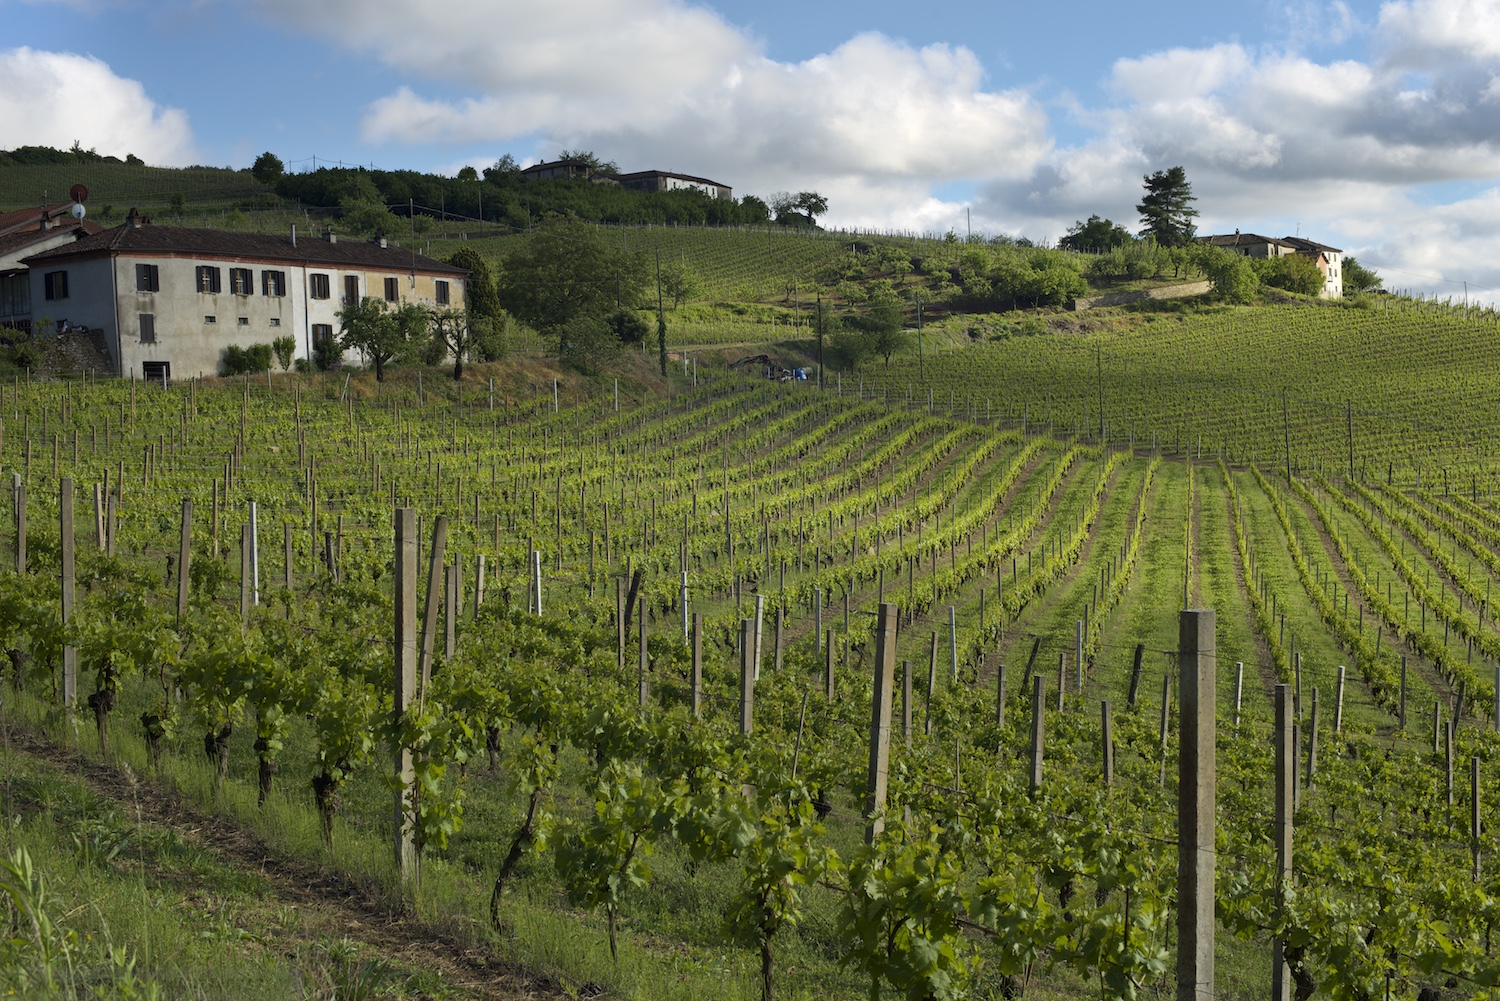 Vineyards near Cossano Belbo, Piemonte